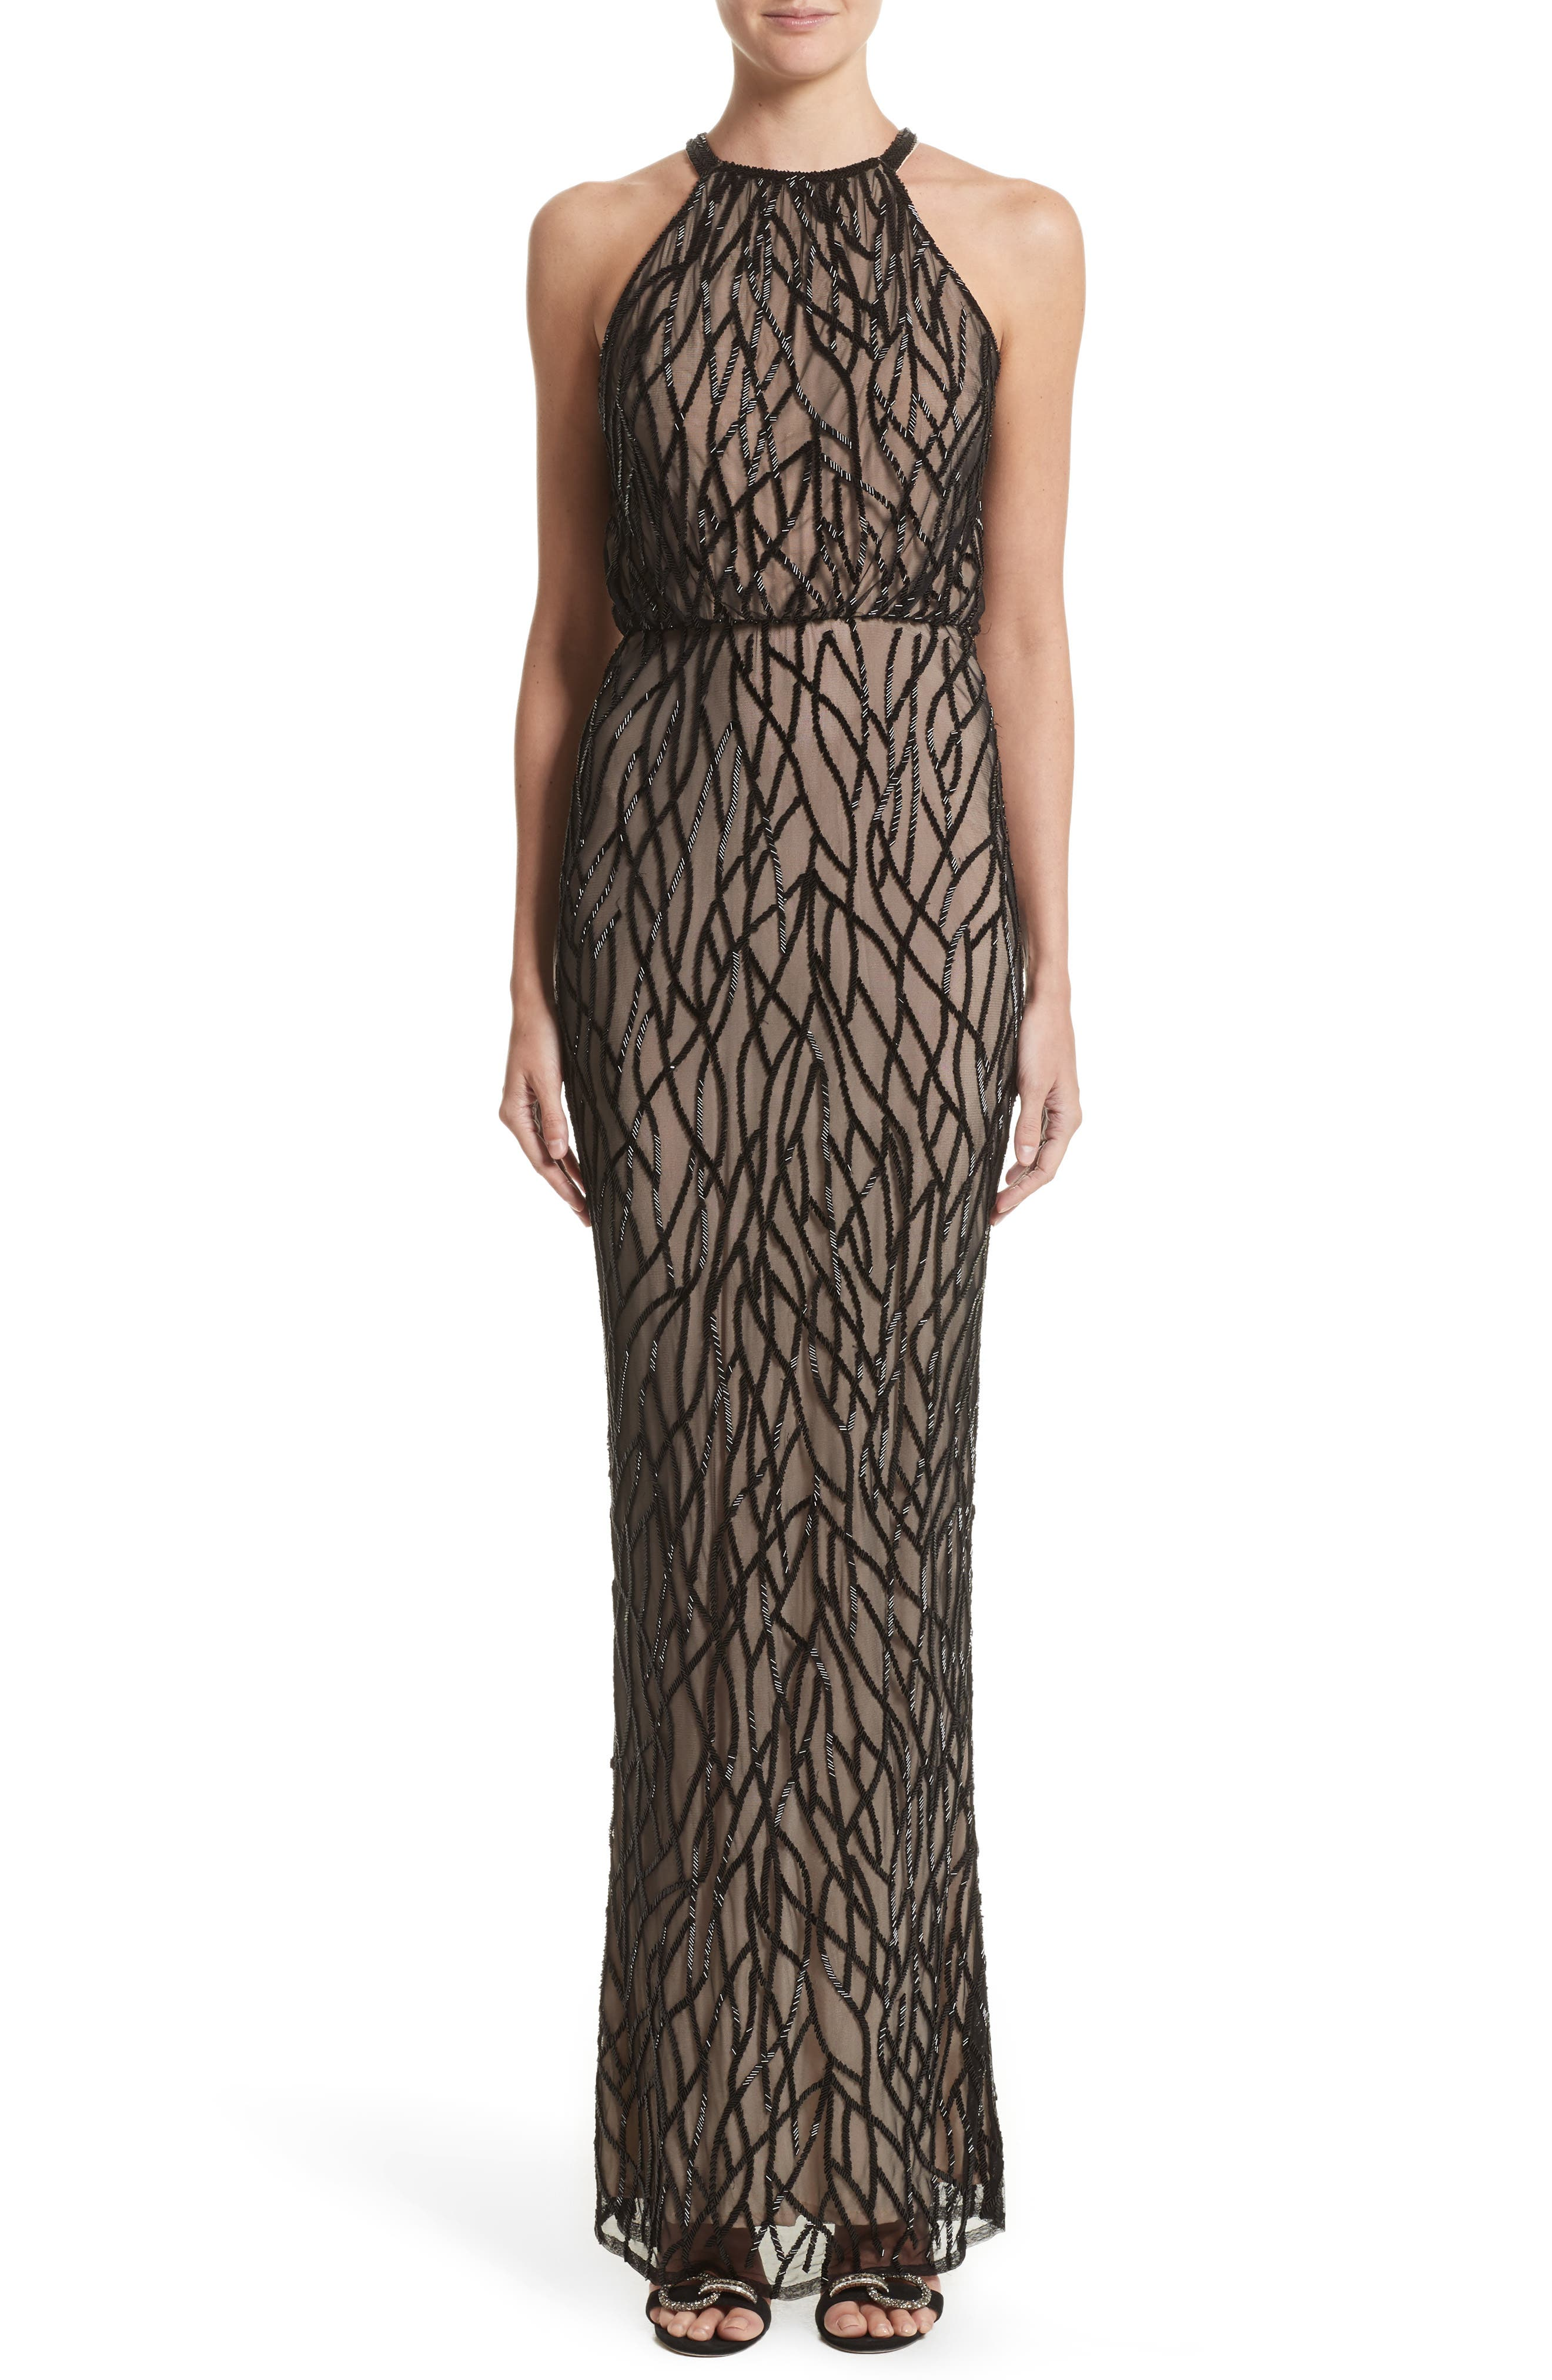 Toriana Beaded Mesh Gown,                             Main thumbnail 1, color,                             Black